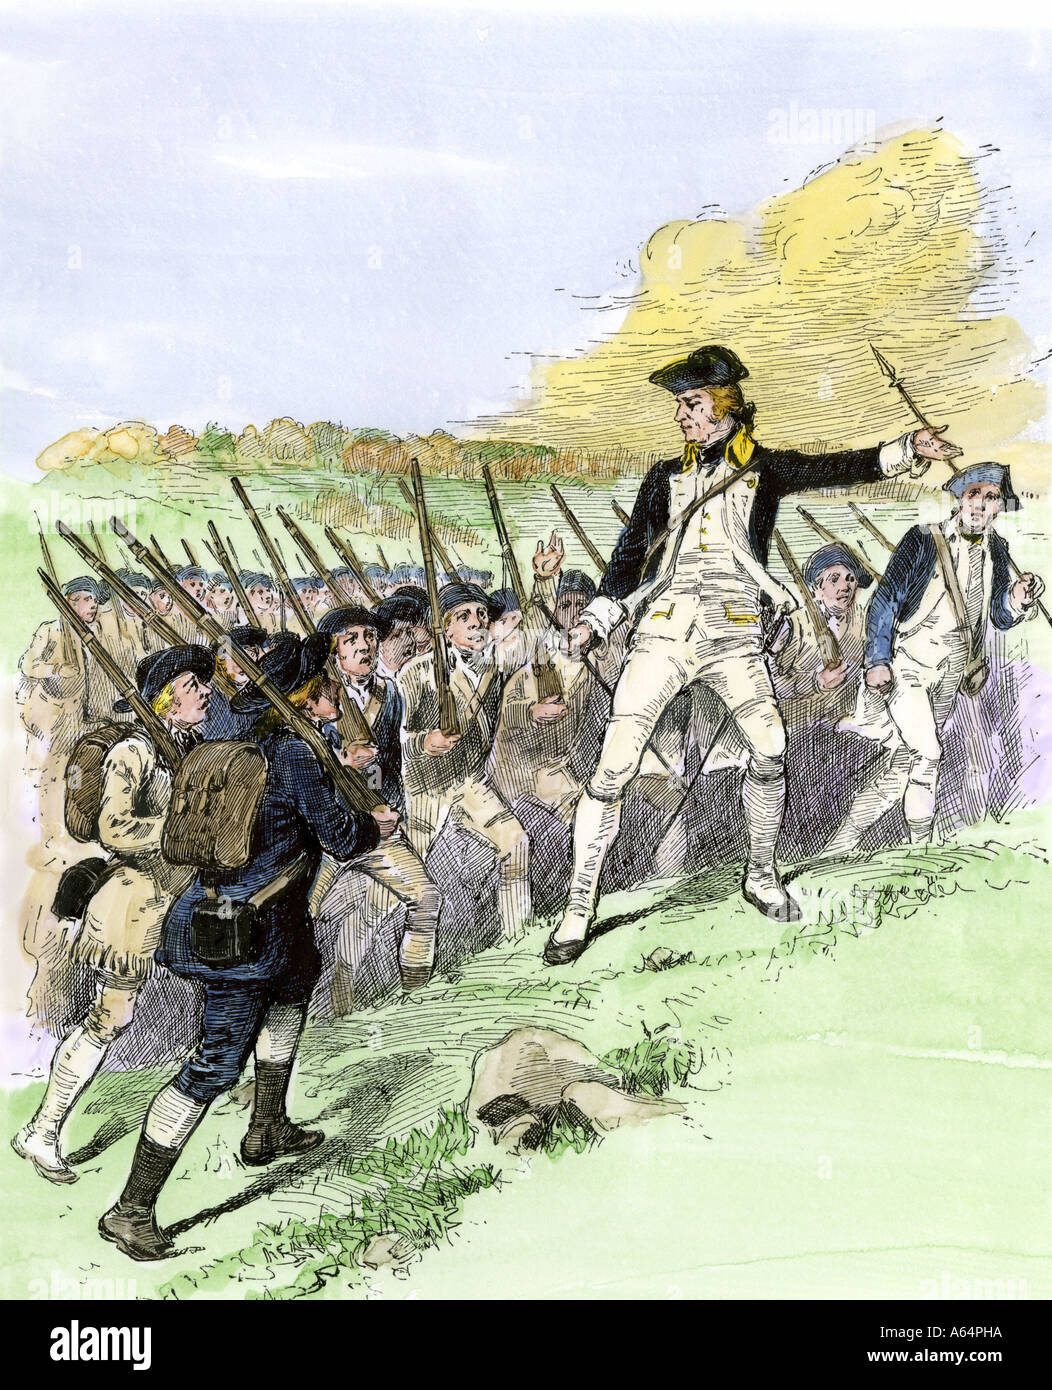 General John Stark leading the New Hampshire militia at the Battle of Bennington Vermont 1777. Hand-colored woodcut - Stock Image